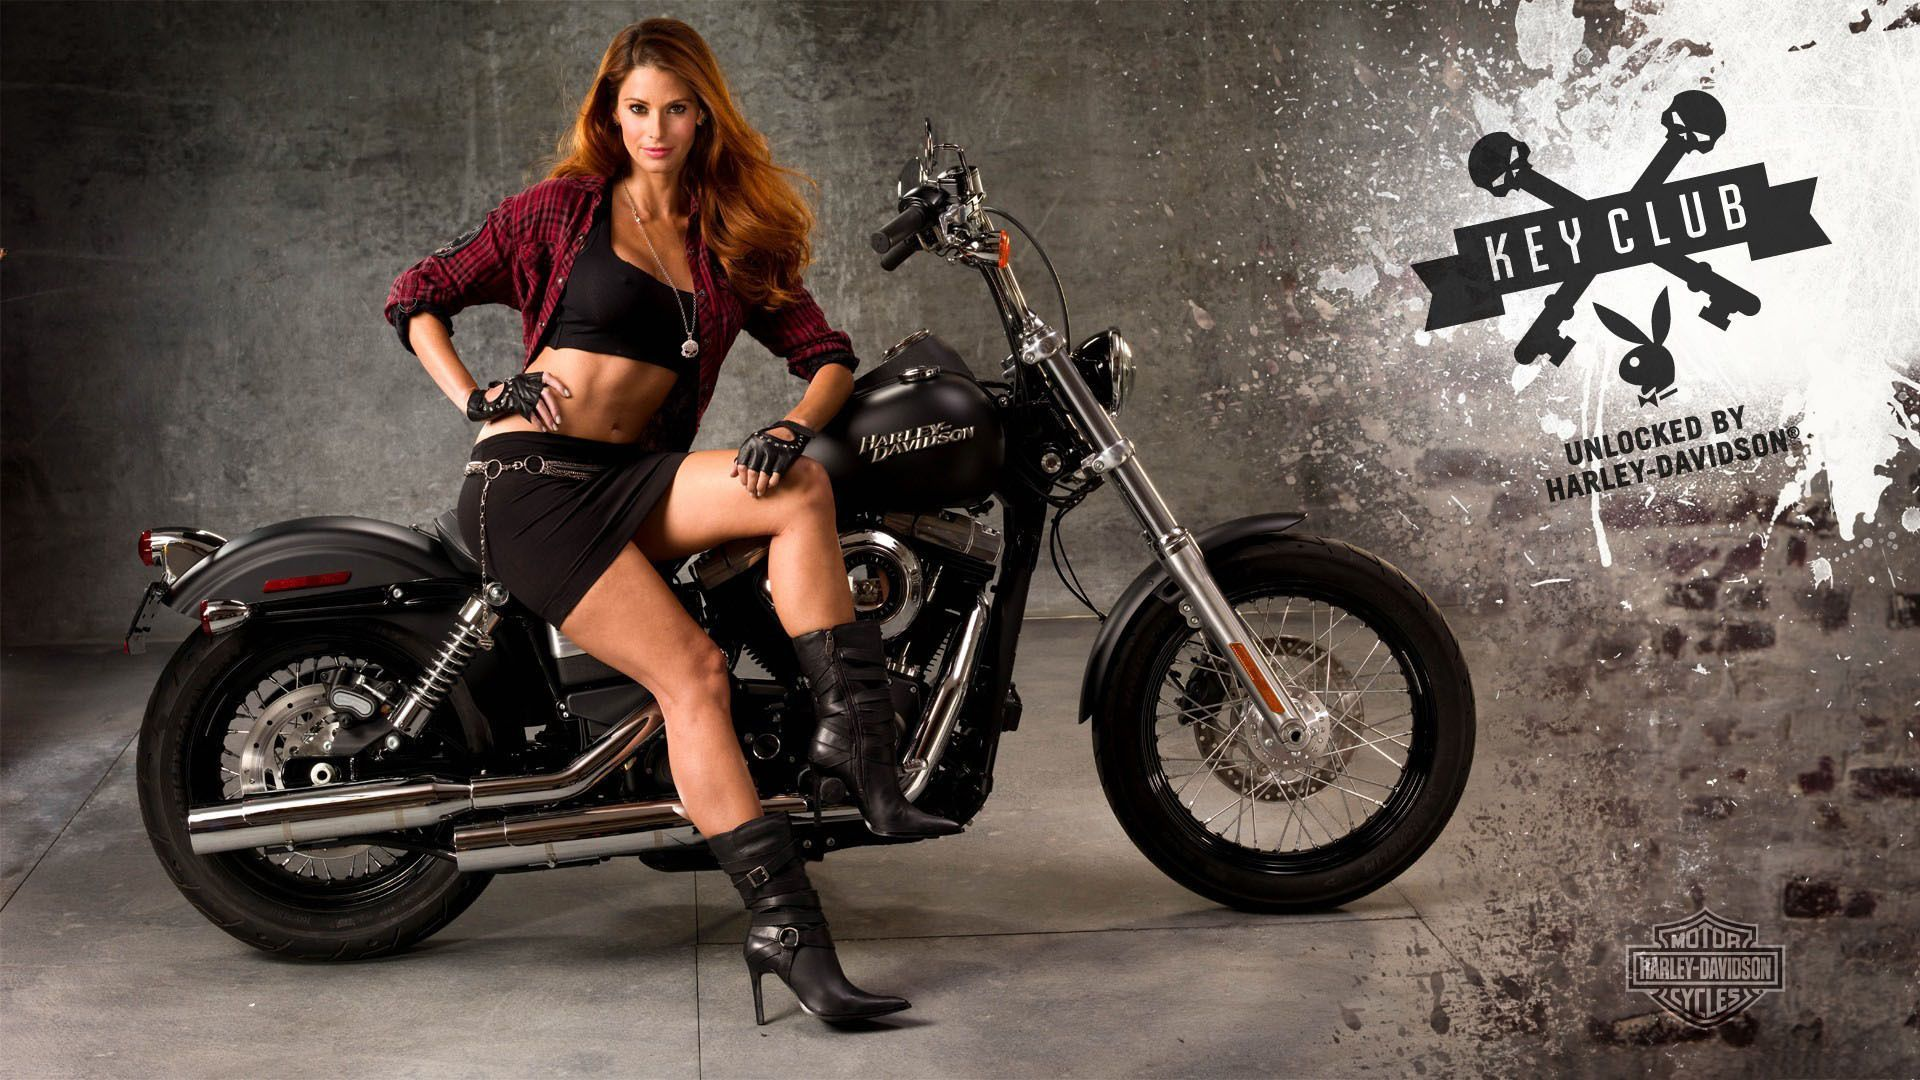 Collection of Harley Girl Wallpaper on HDWallpapers